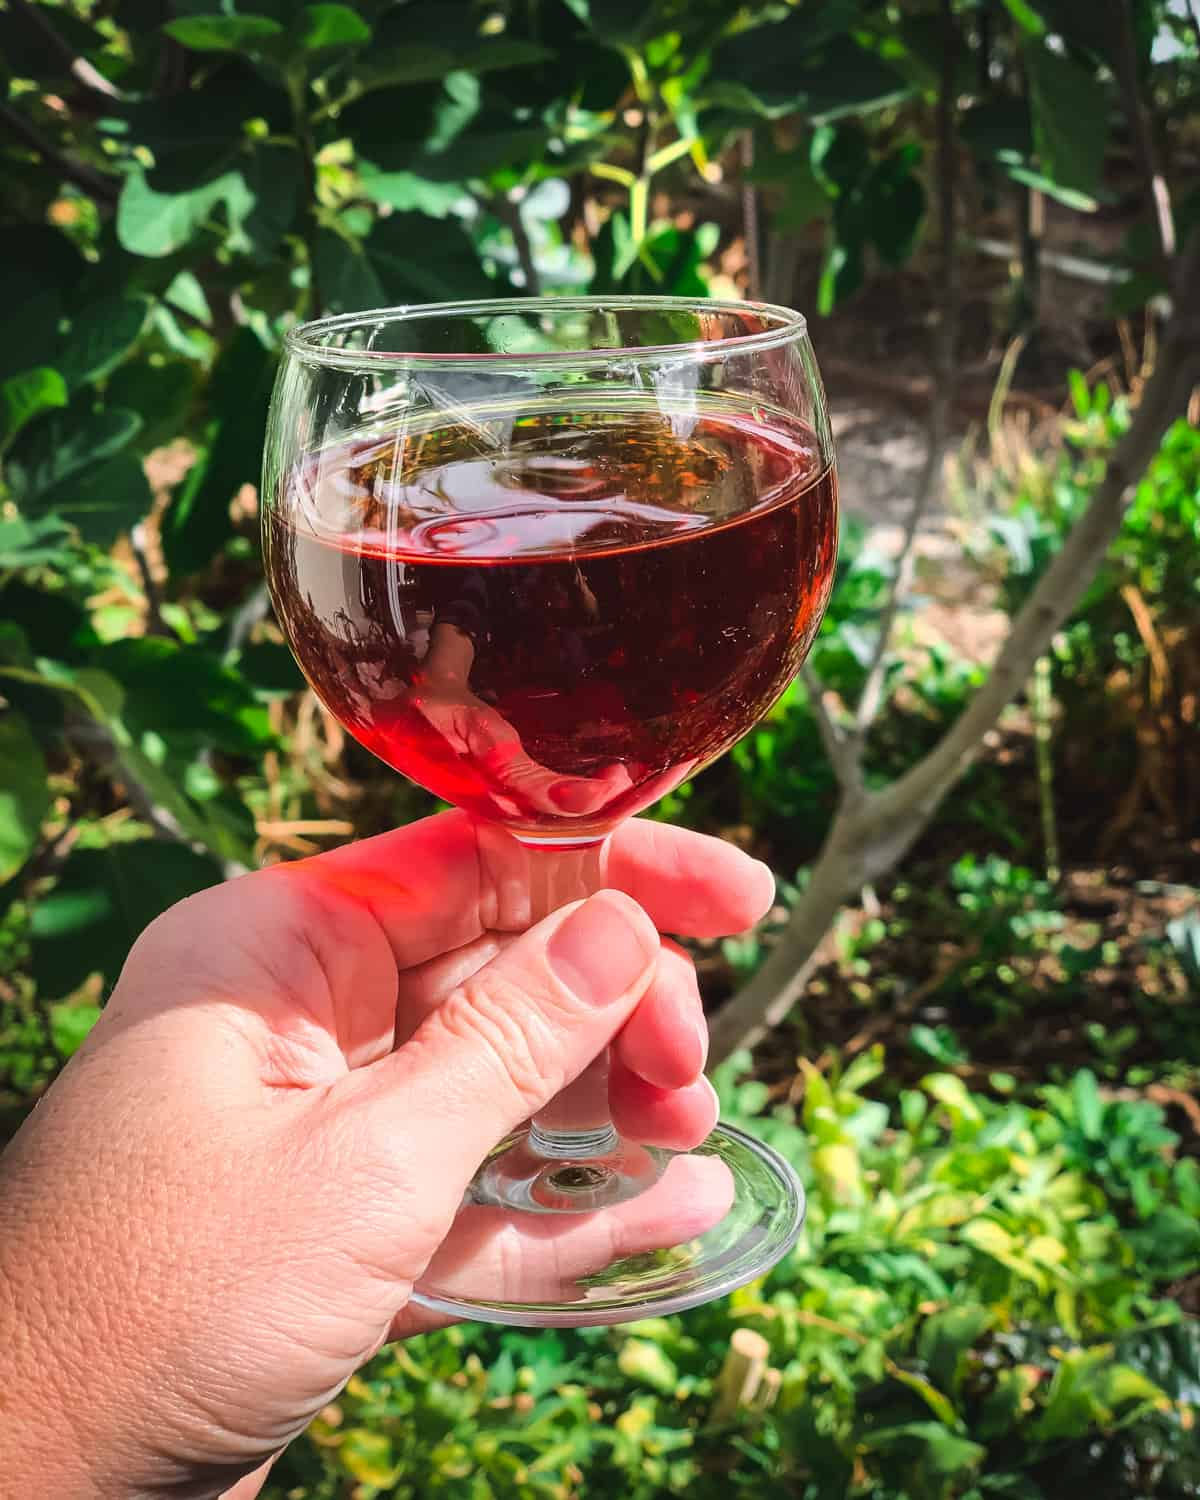 a hand holding a glass of pomegranate wine